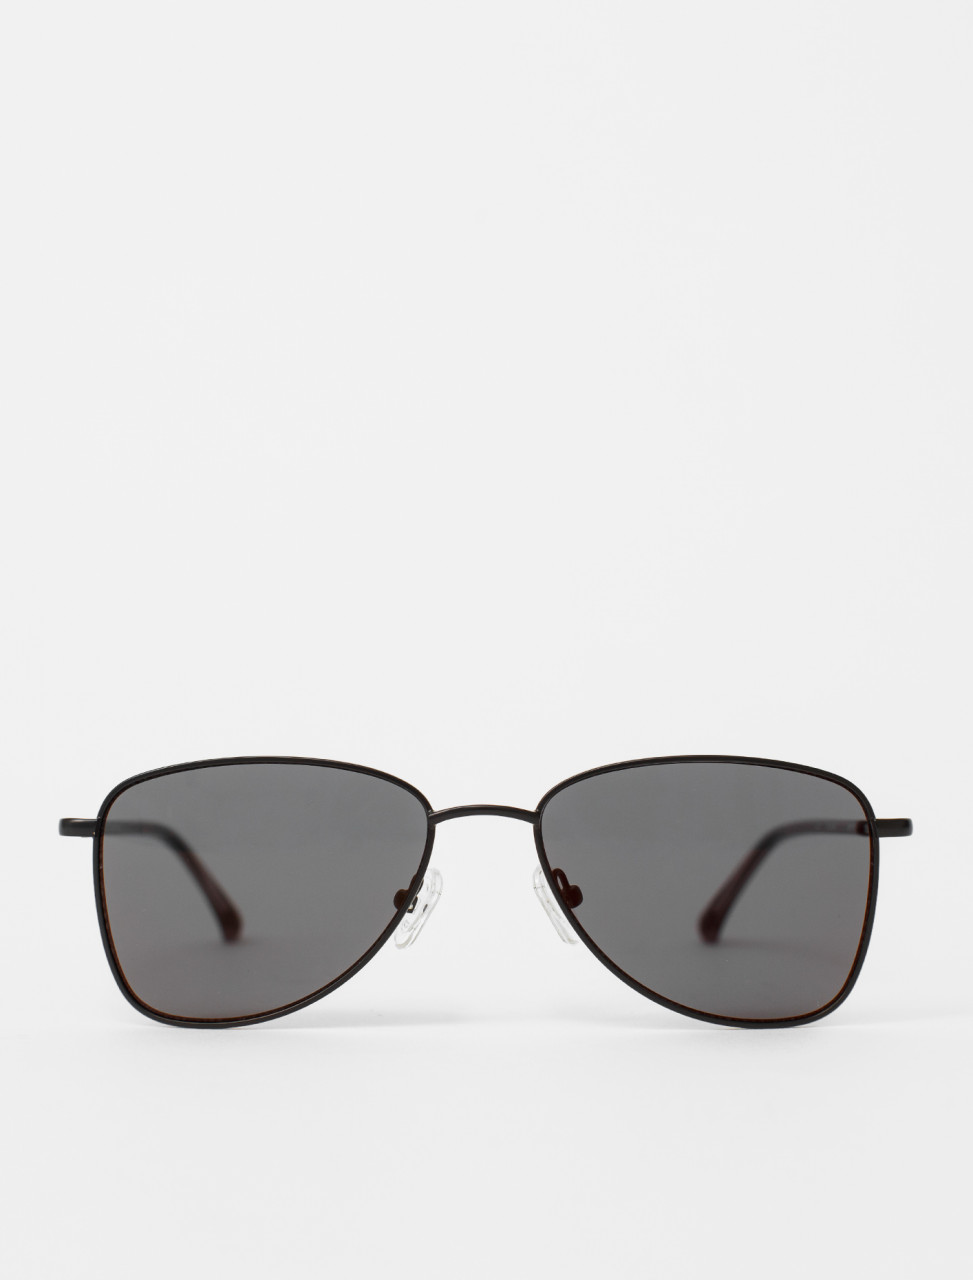 Dries van Noten Steel Frame Sunglasses